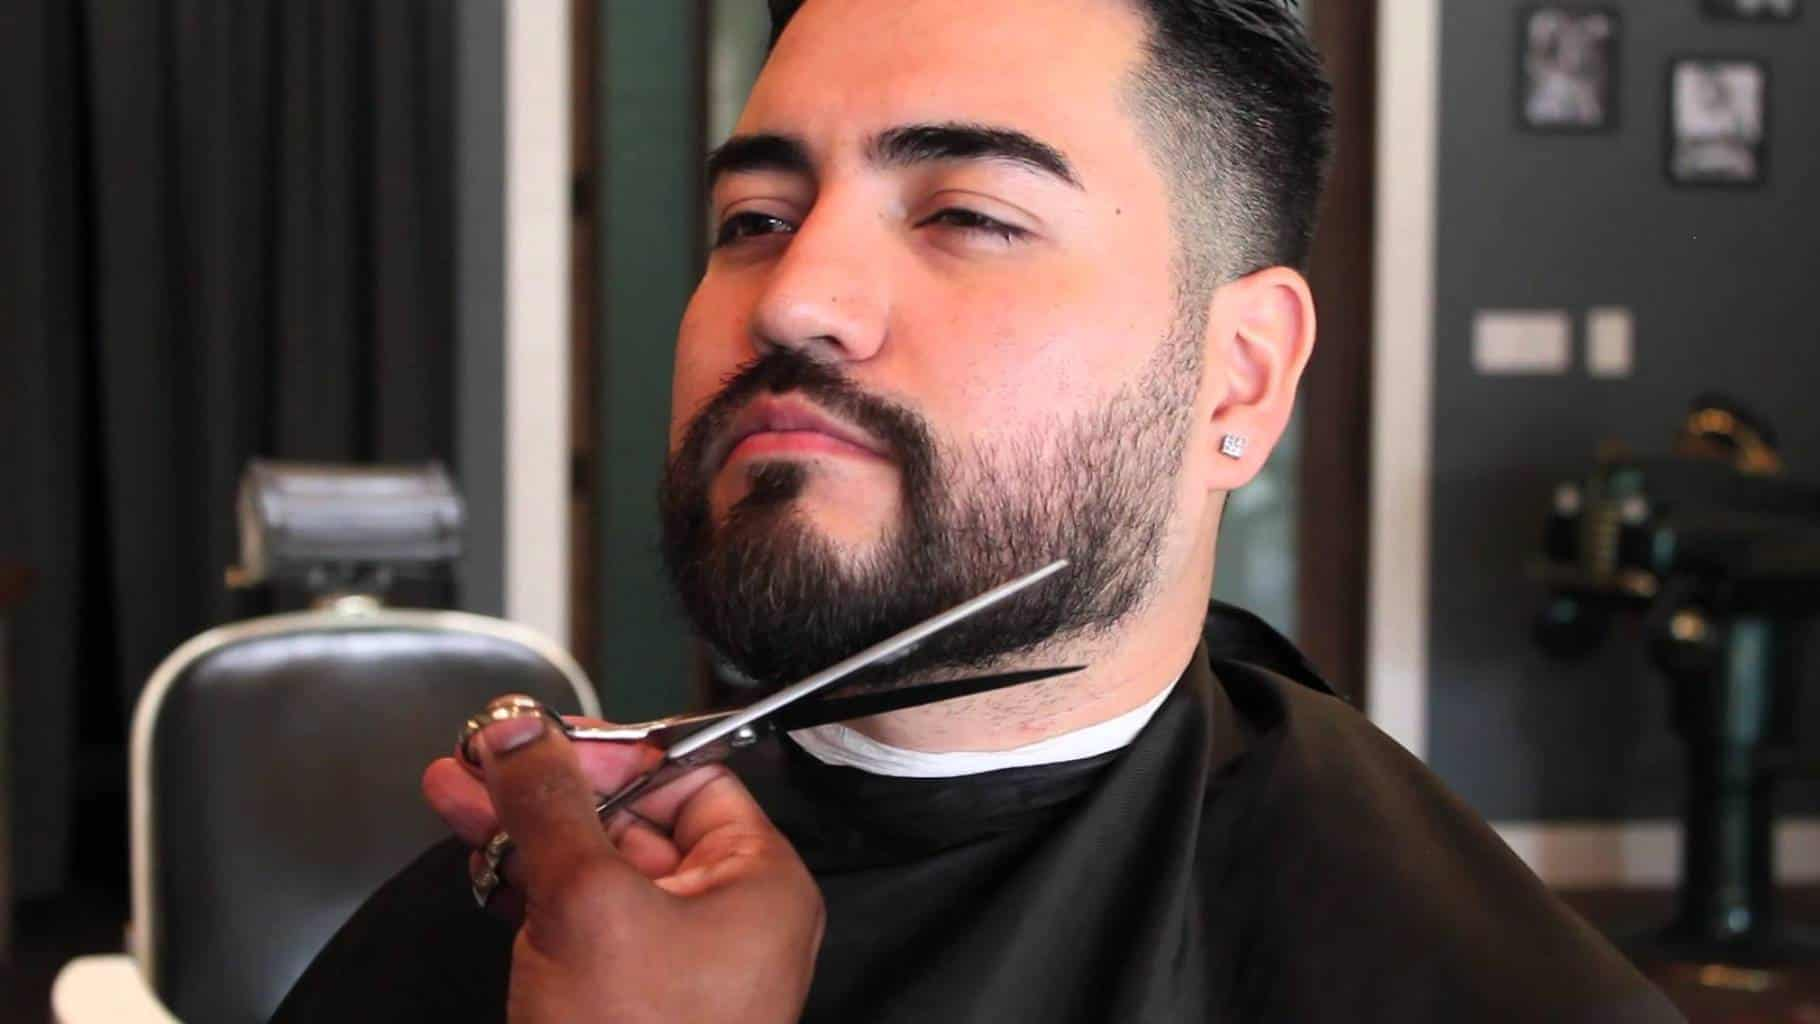 maxresdefault How to Make Your Beard Soft & Shiny: 11 Tips